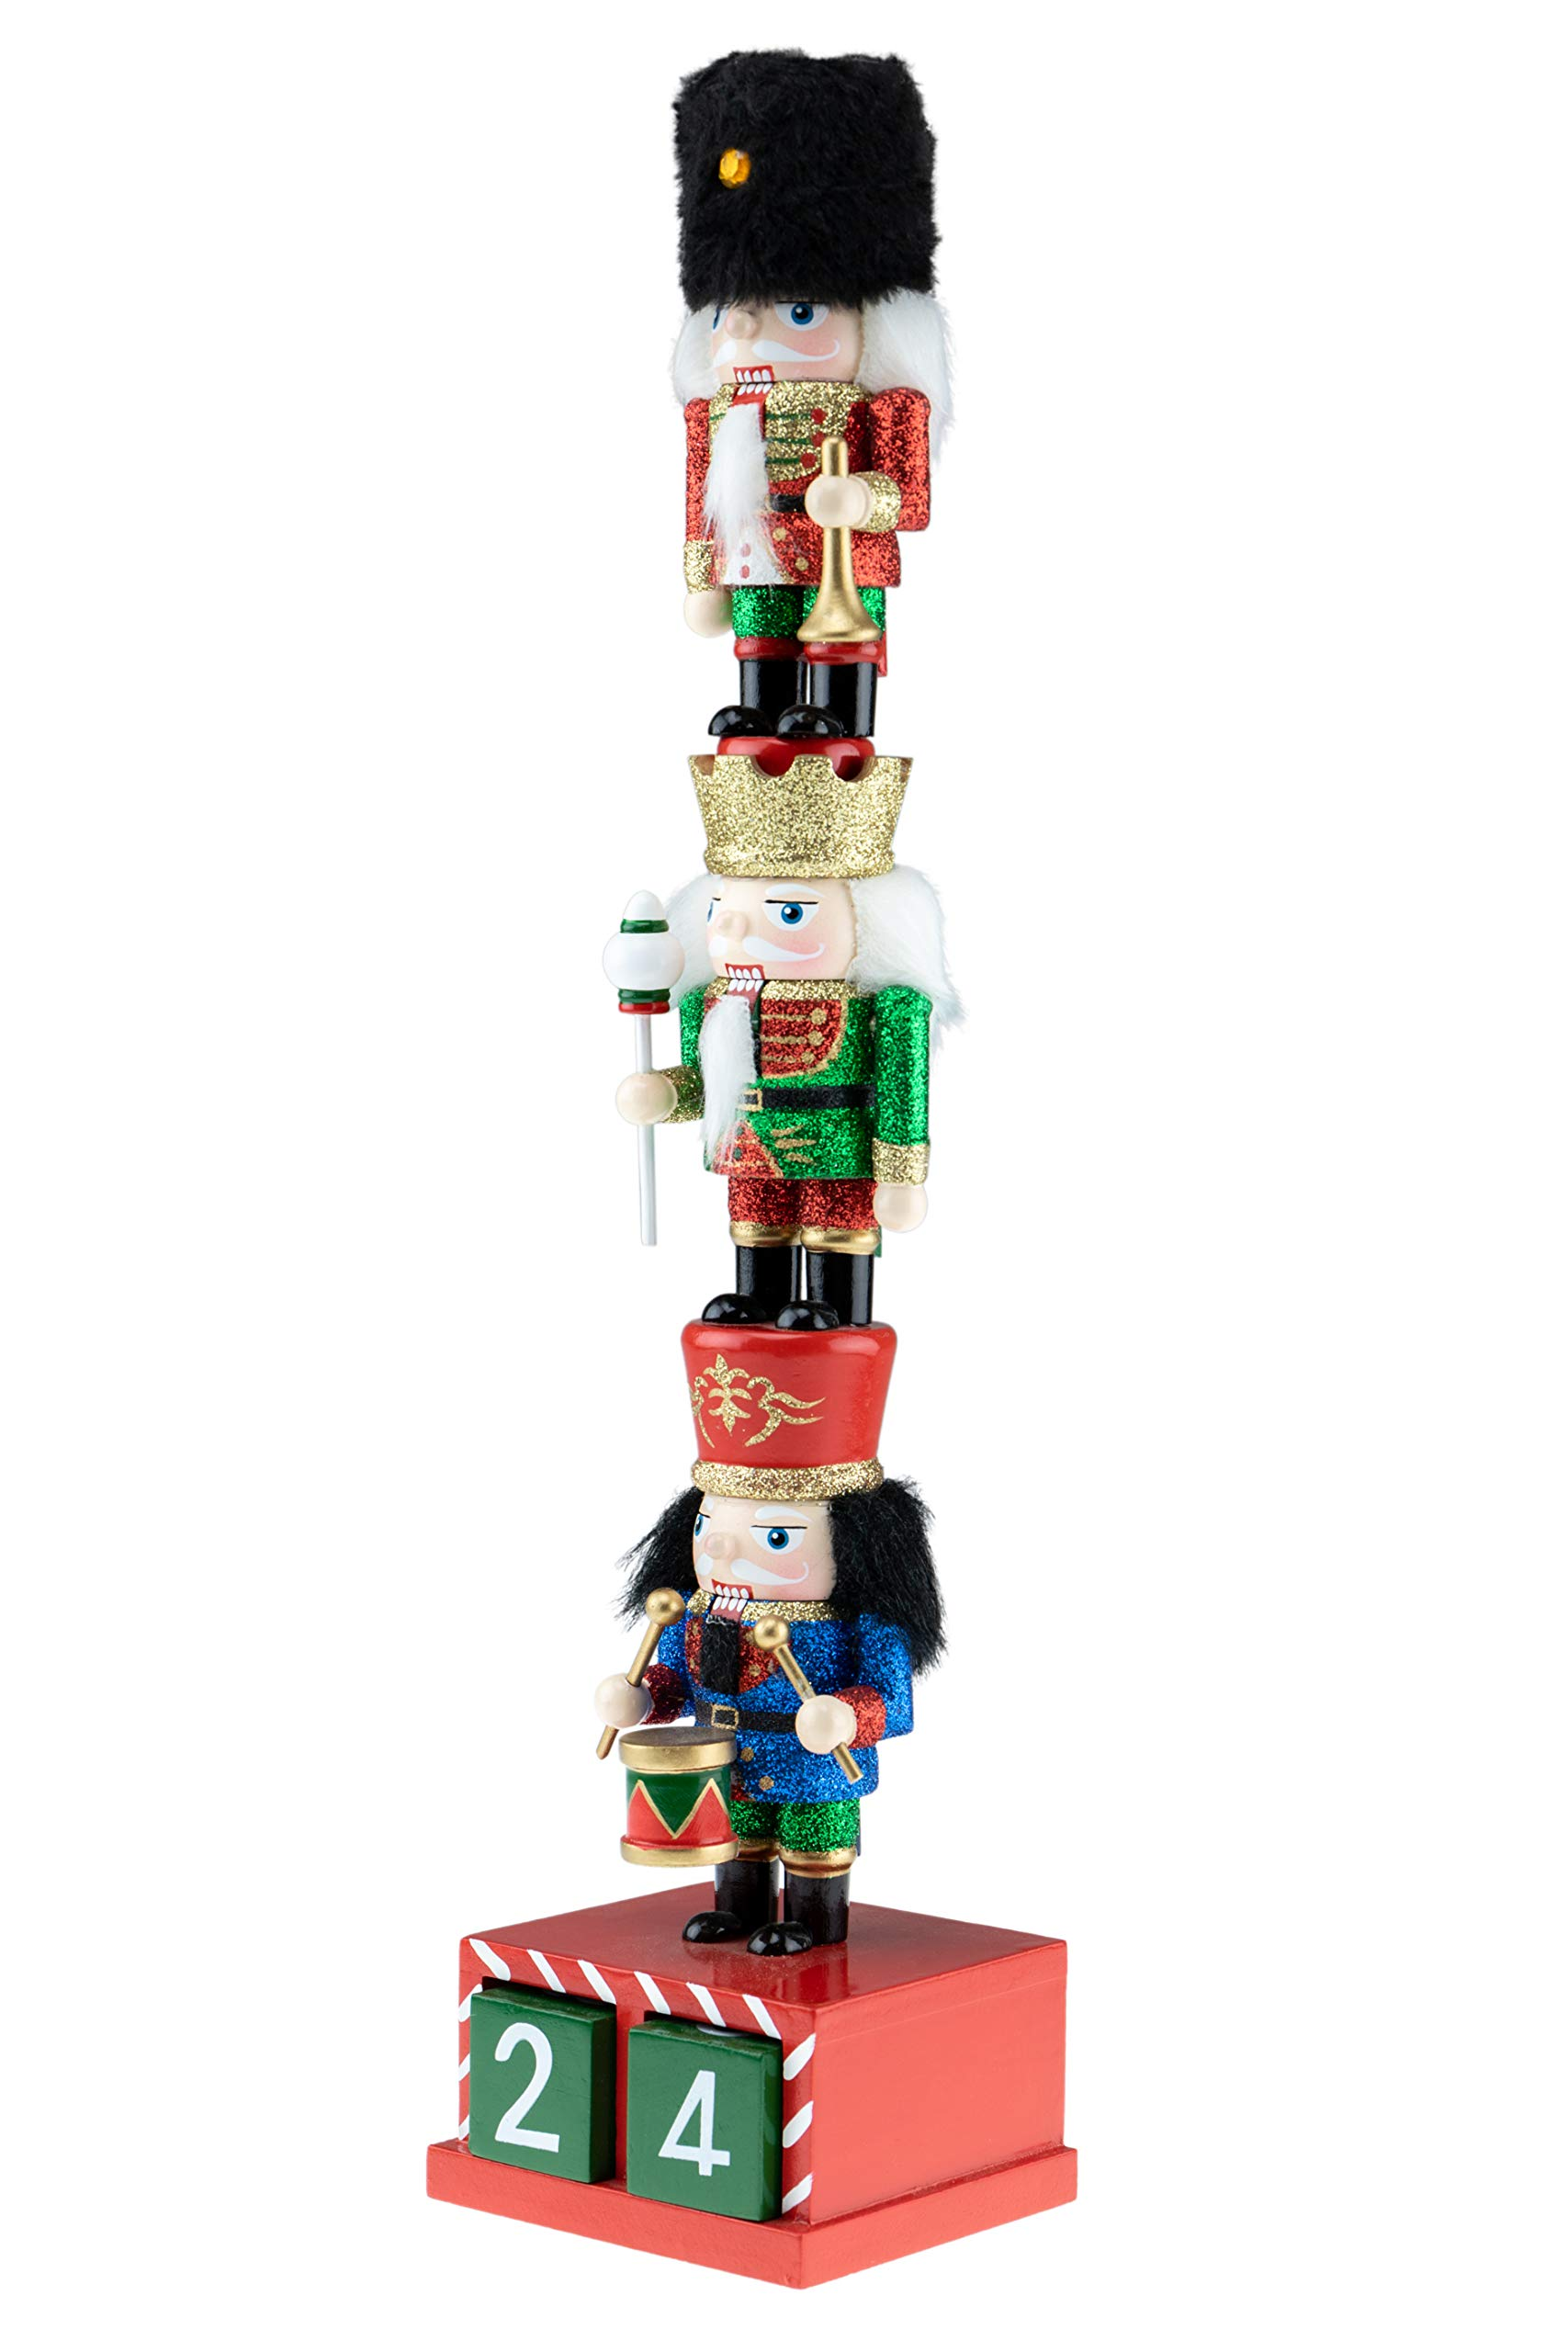 Clever Creations Wooden Stacked Chubby Nuctrackers with Countdown Calendar | Three Traditional Unique Mini Nutcrackers Stacked | Festive Christmas Decor | 14'' Tall Great for Any Holiday Collection